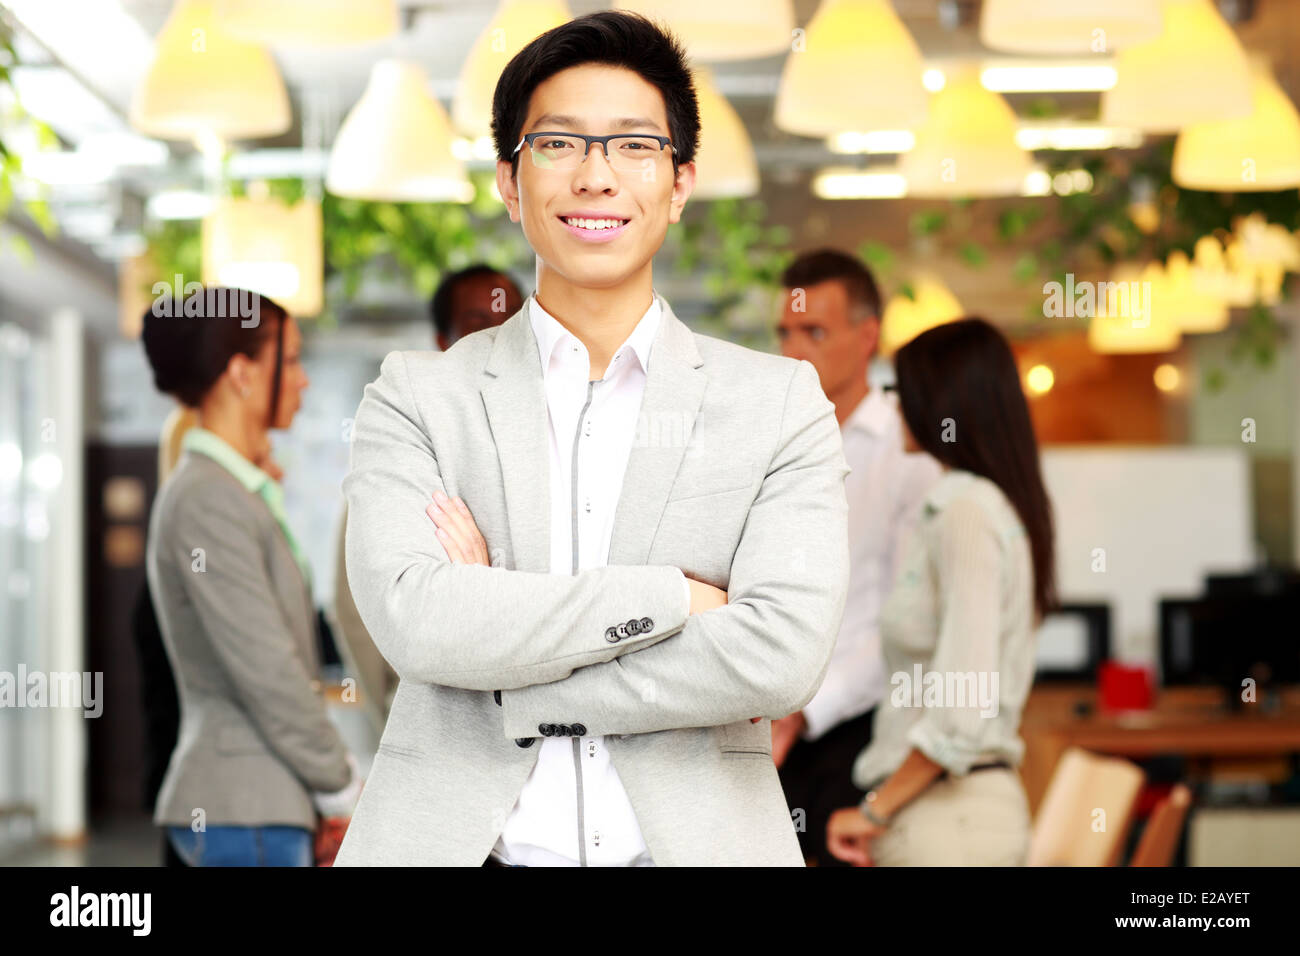 Portrait of smiling businessman with arms folded standing in front of colleagues - Stock Image